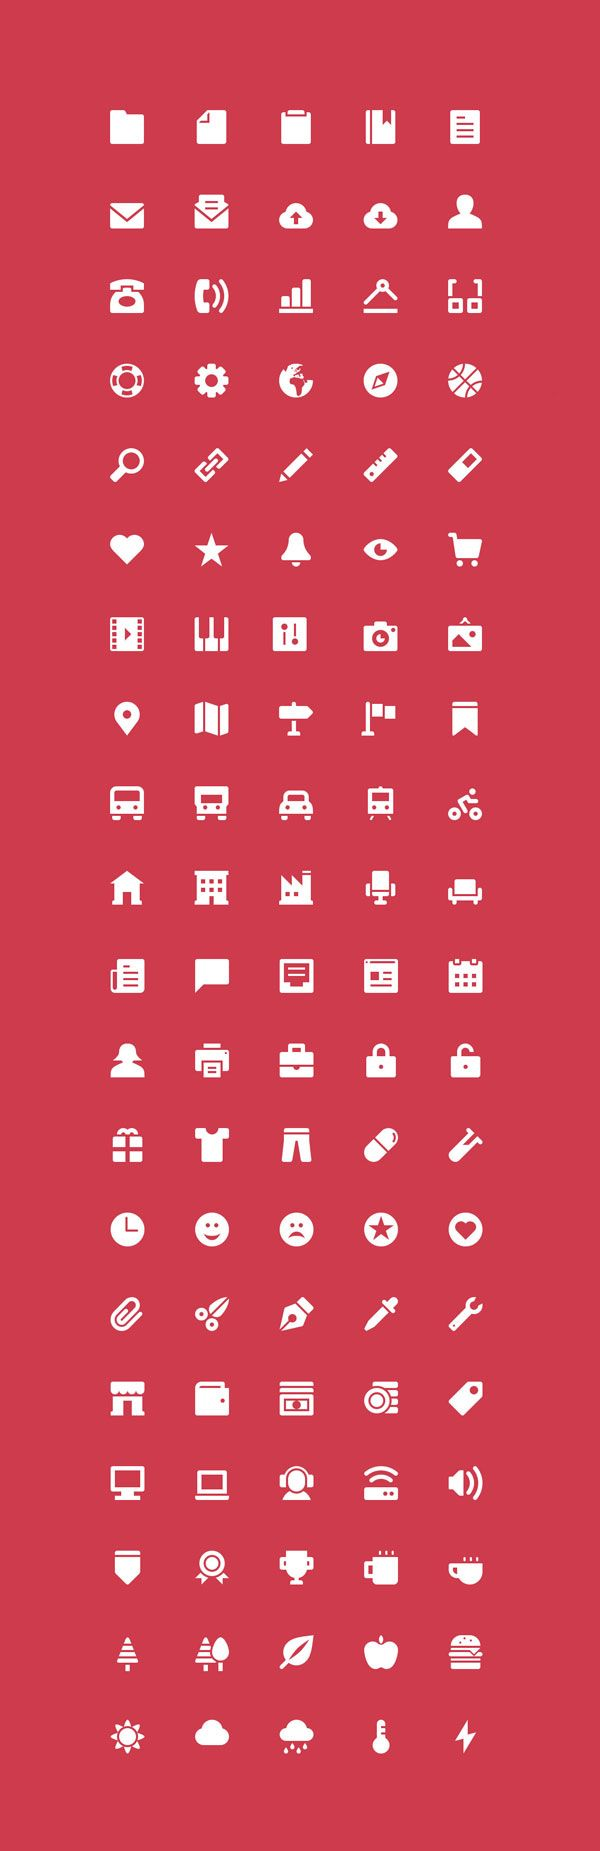 The Icons: 100 Free Icons | GraphicBurger